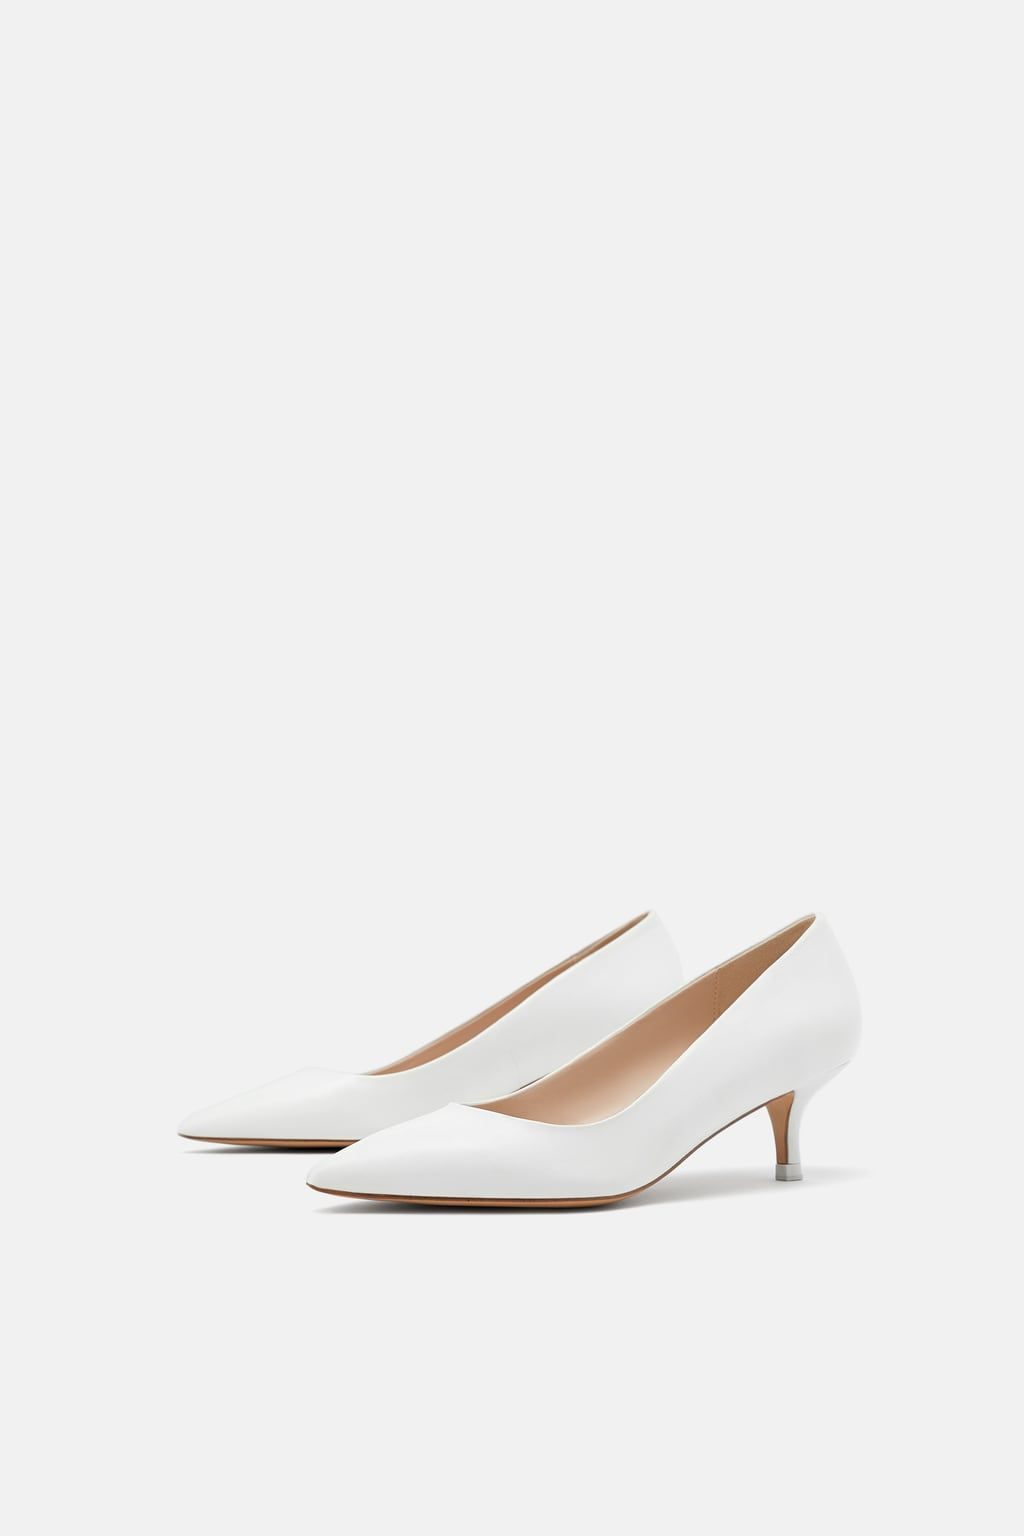 Image 1 Of Leather Mid Heel Shoes From Zara Heels Leather Heel Shoes White Leather Shoes